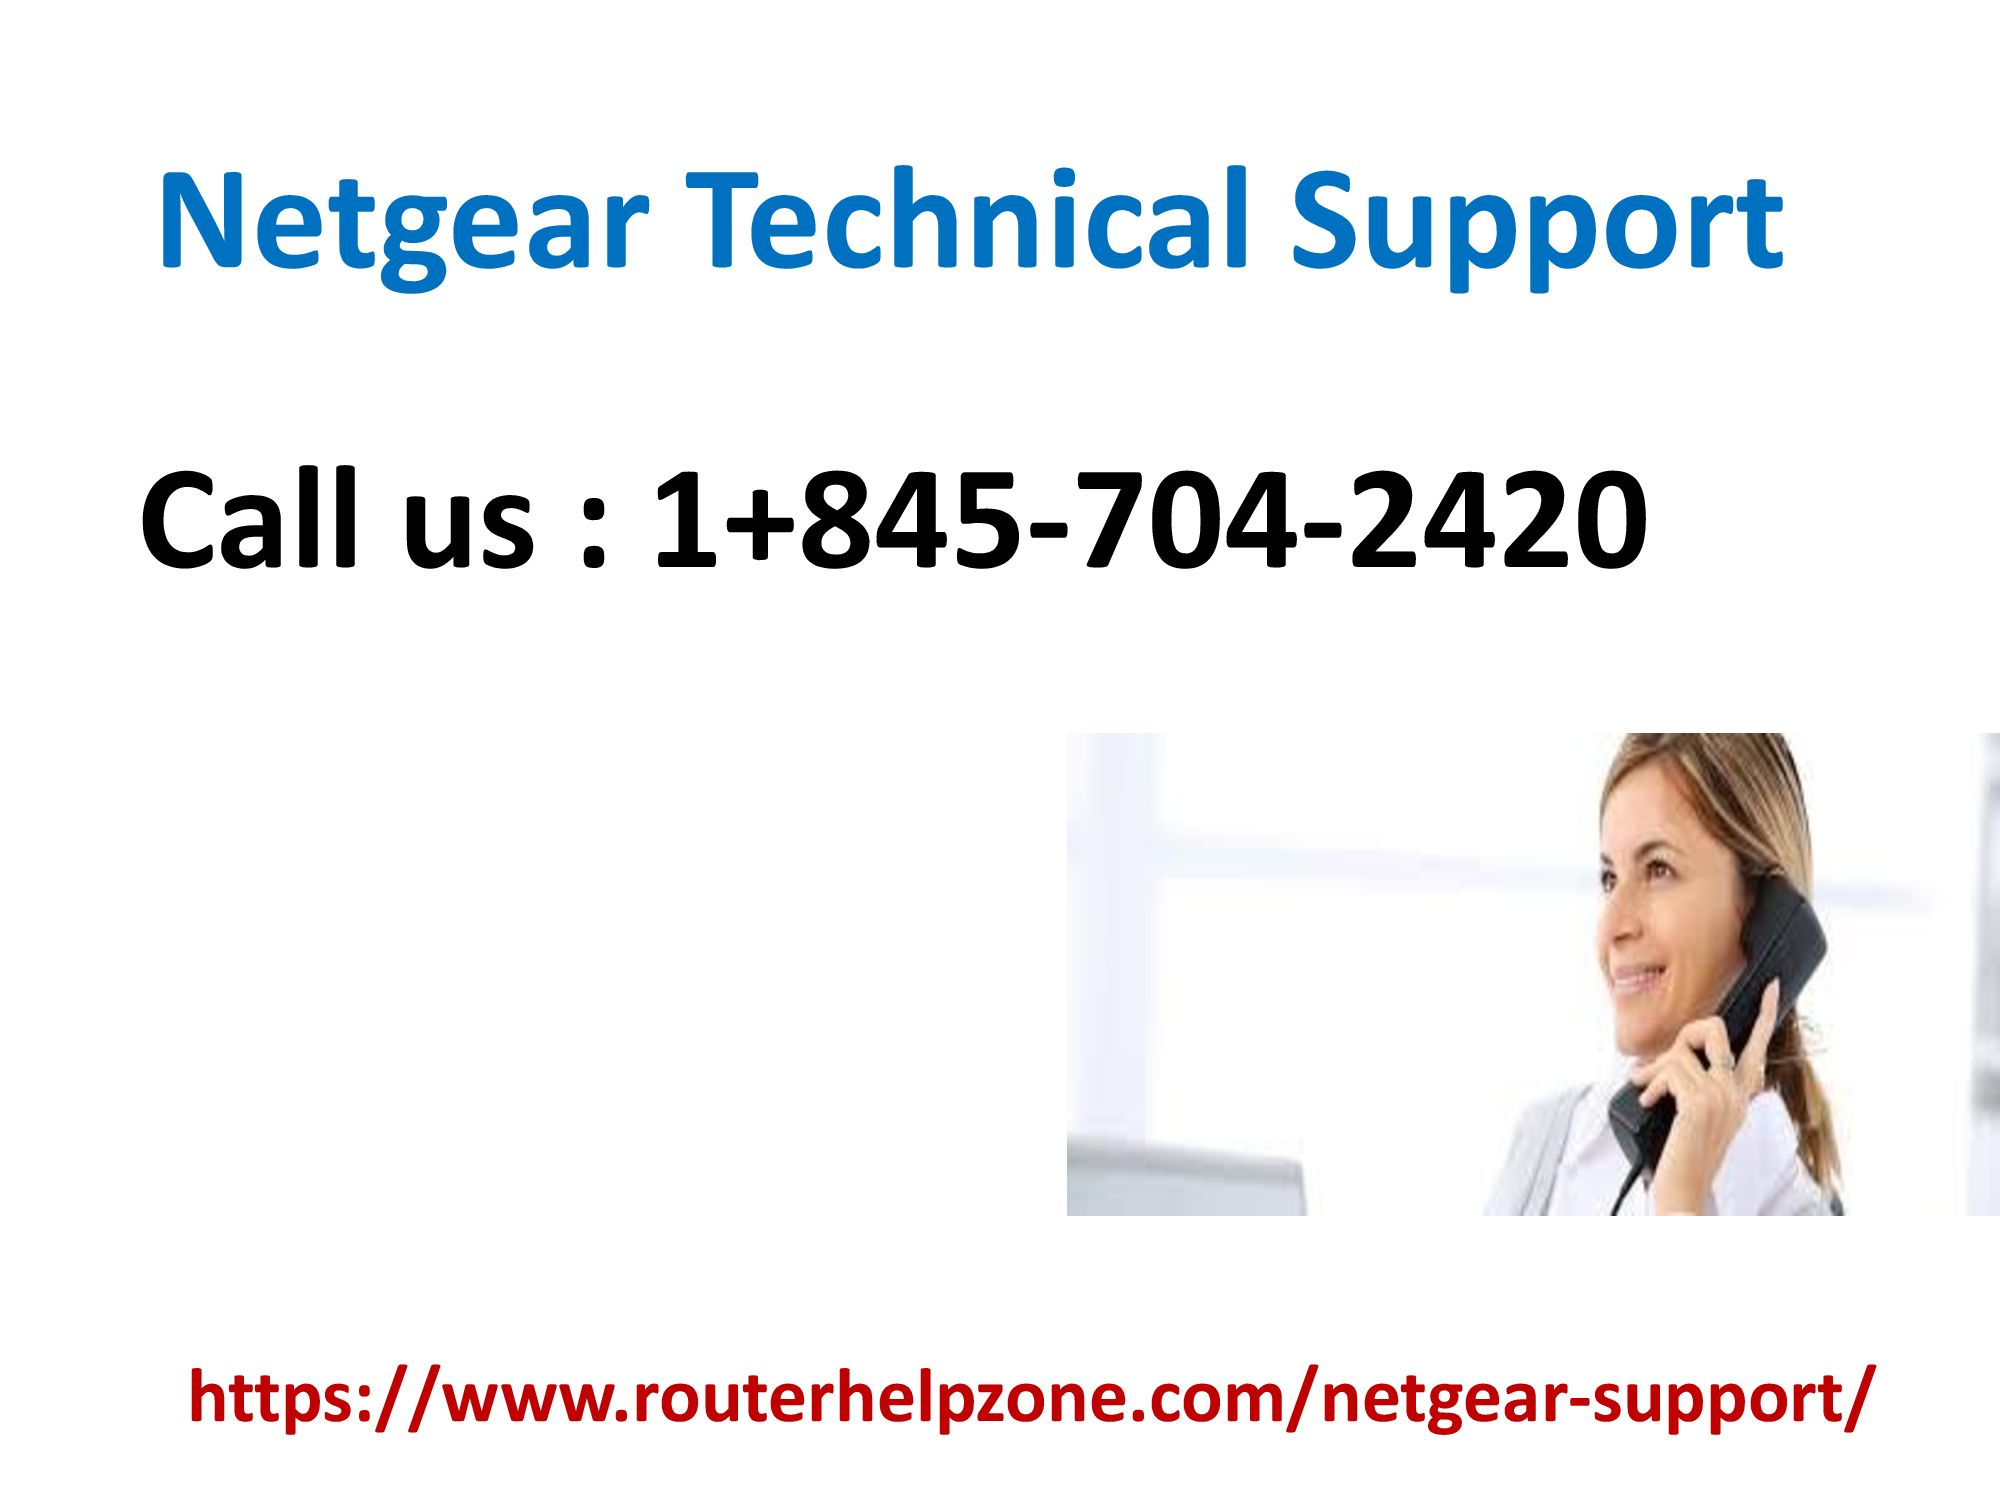 CONTACT US. Looking for Customer Support? We're here and